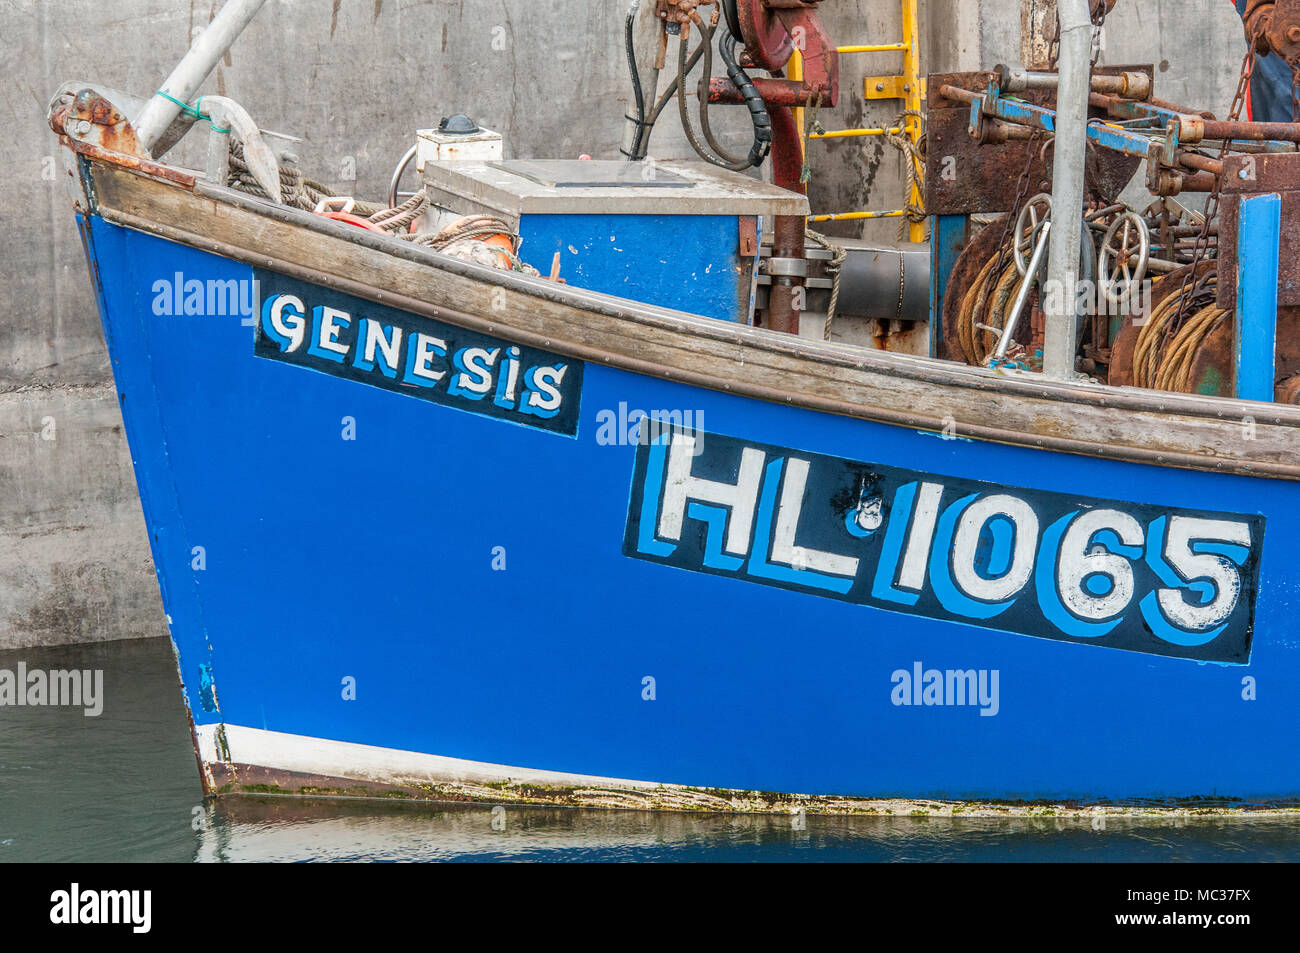 Genesis, the prow of a fishing boat moored up at Seahouses harbour, Northumberland coast. - Stock Image